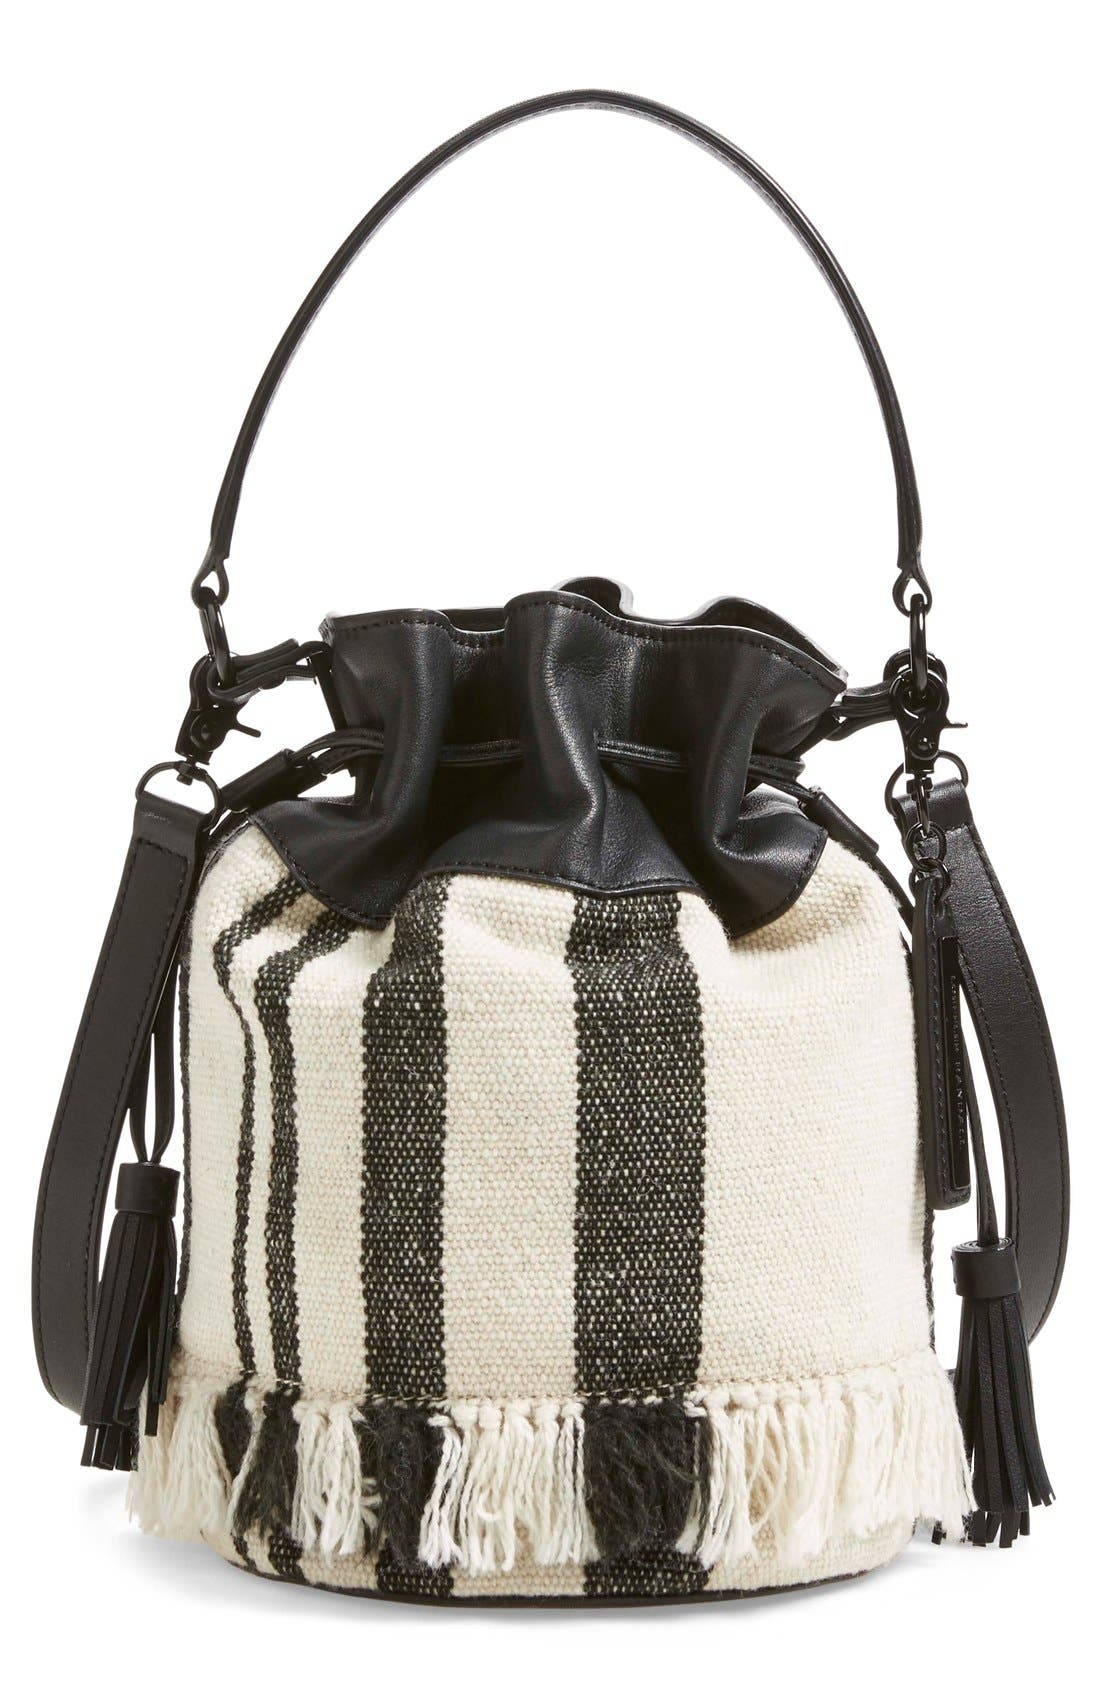 Main Image - Loeffler Randall Woven Canvas & Nappa Leather Bucket Bag